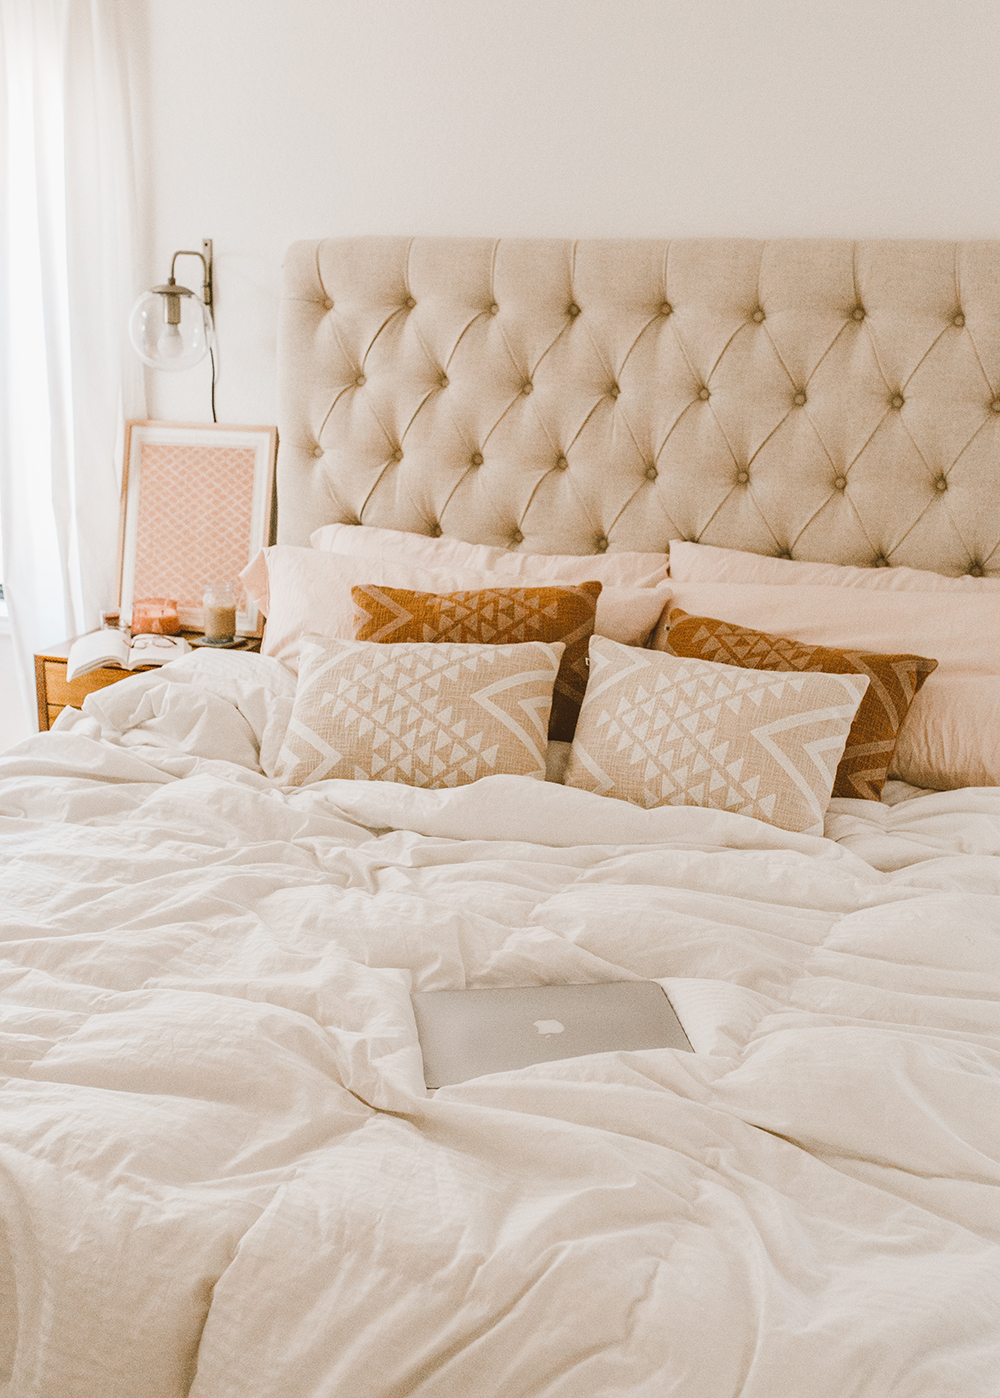 livvyland-blog-olivia-watson-austin-texas-lifestyle-blog-urban-outfitters-home-decor-bohemian-cozy-throw-pillows-bedroom-ideas-6